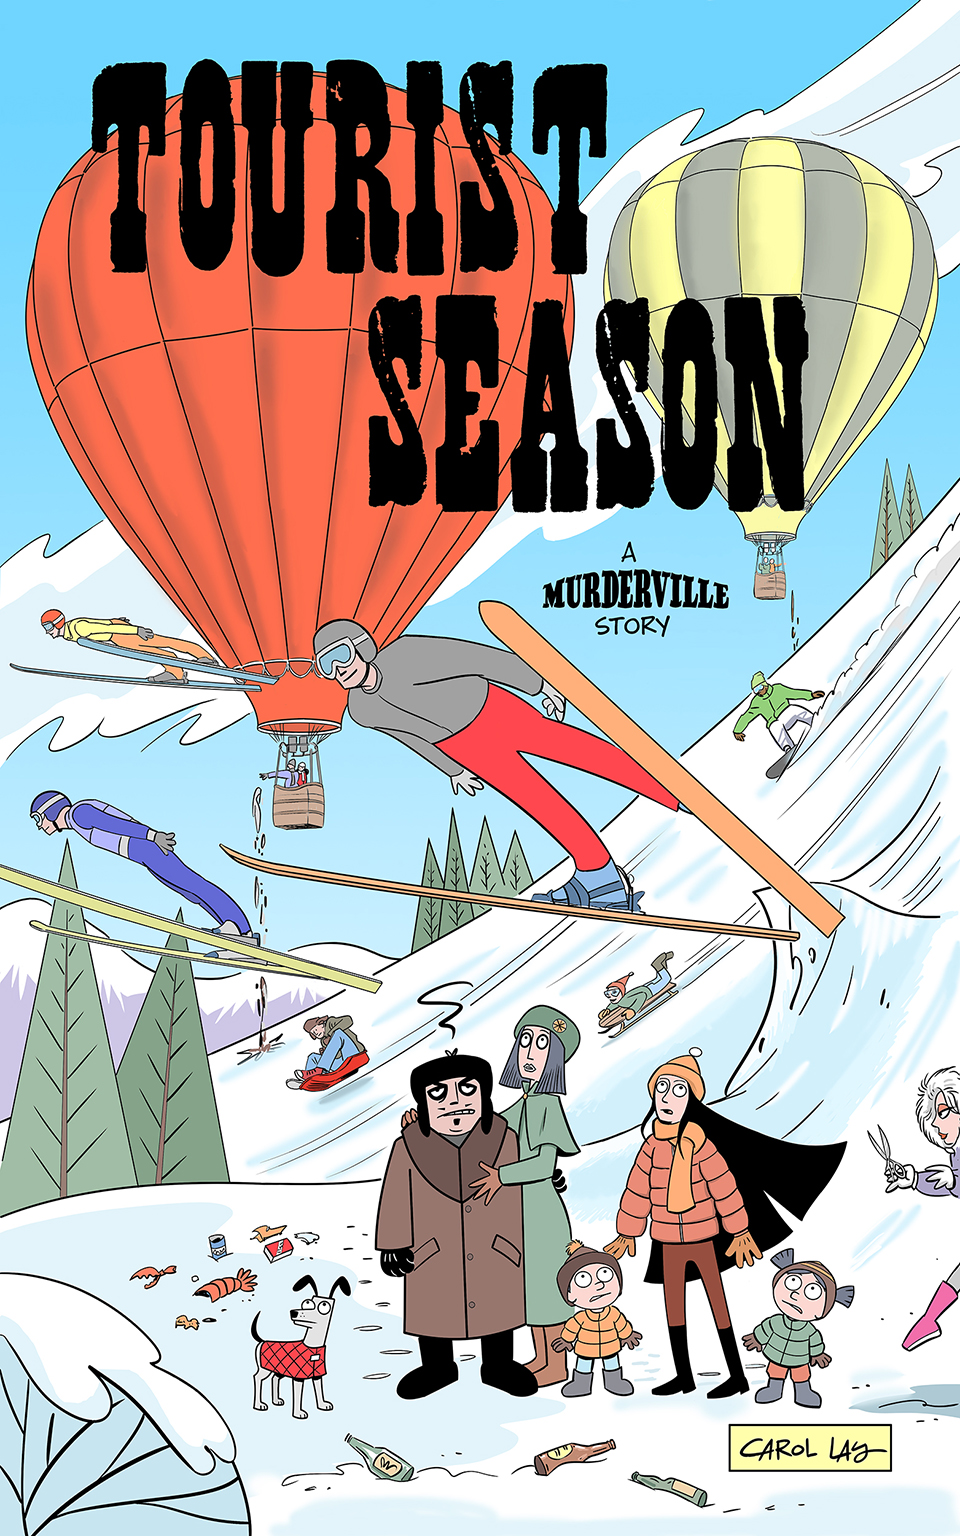 Tourist Season - The Scazzo family gets involved in an all-out war with the snobs from Snobonquit. 59 color pages from Waylay Books, 2016.